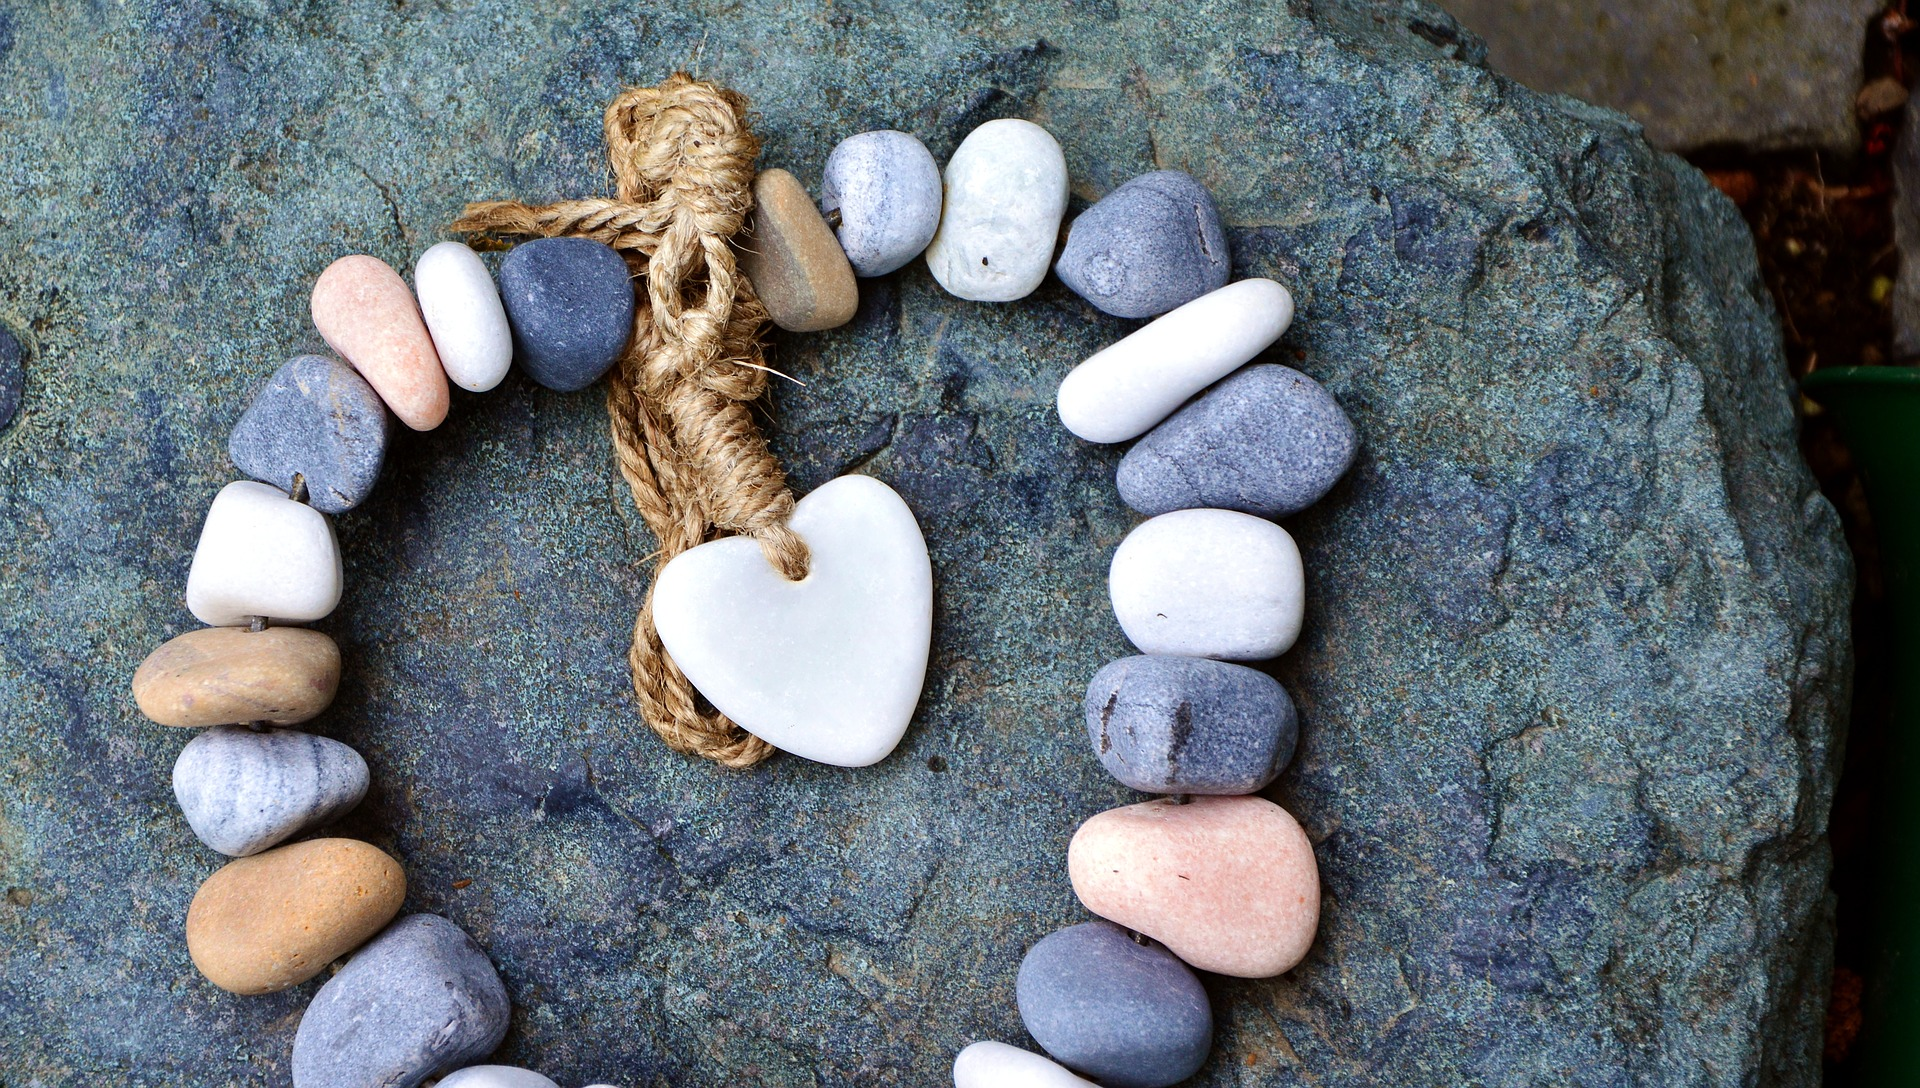 Heart and stones